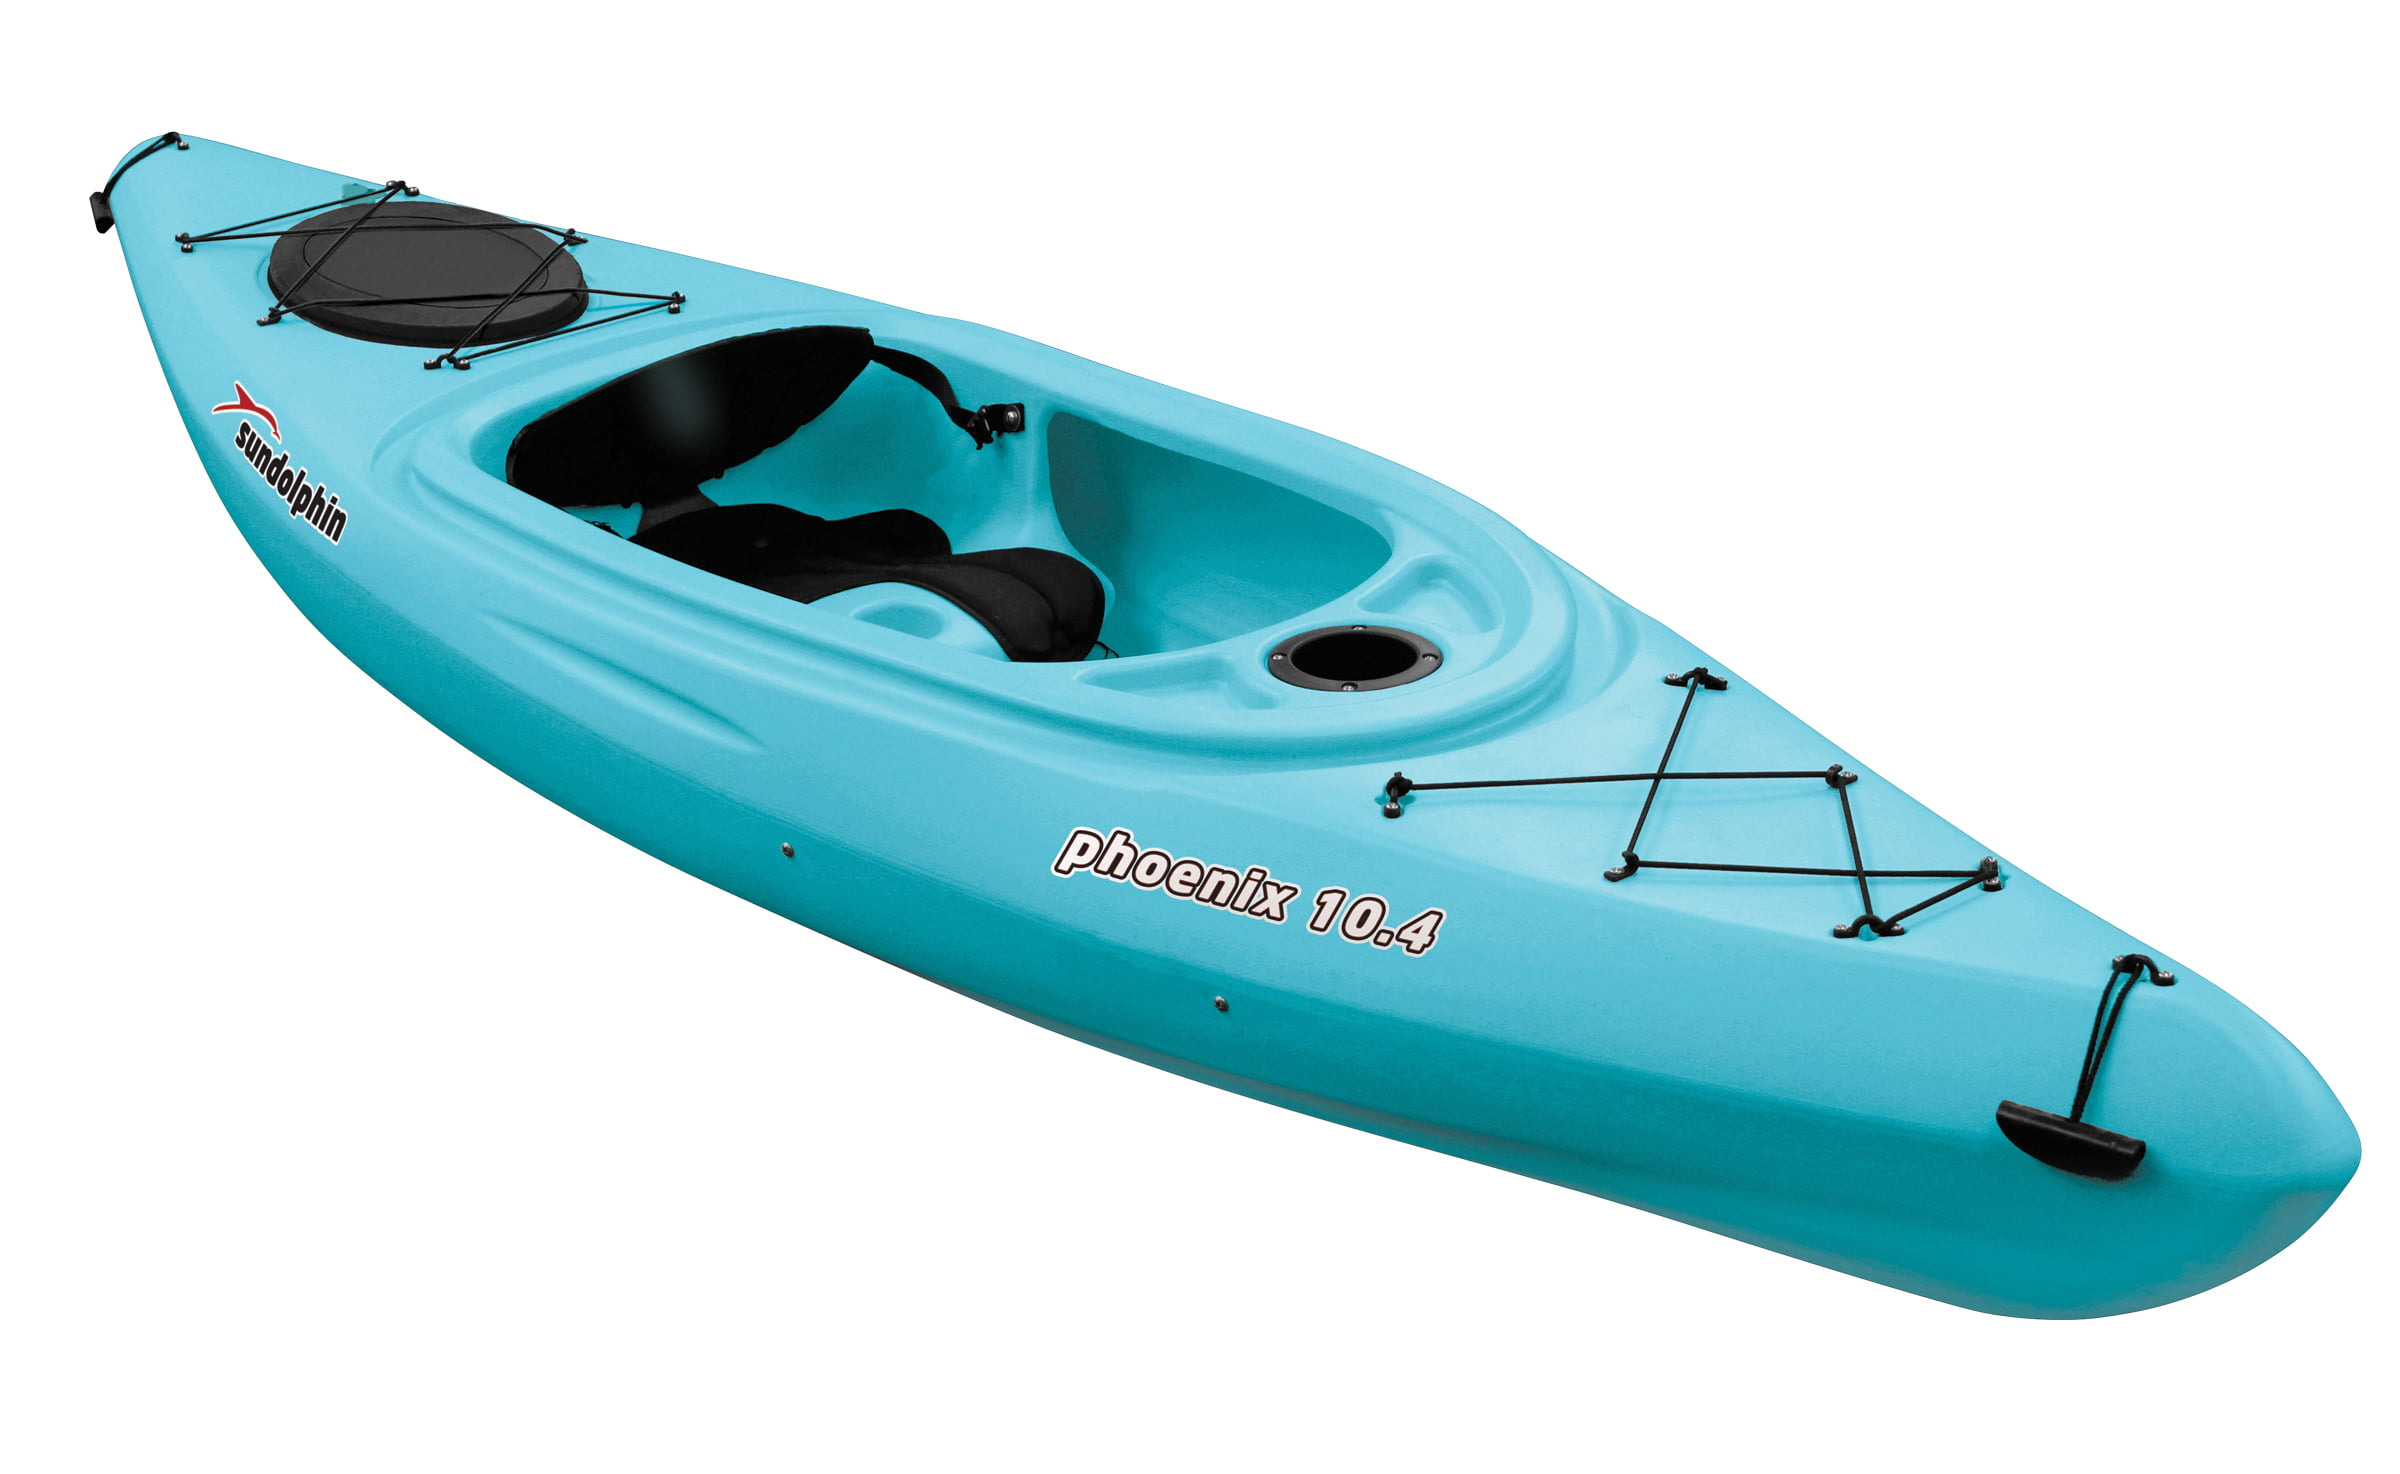 Phoenix 10.4 Sit-In Kayak, Paddle Included by KL Outdoor